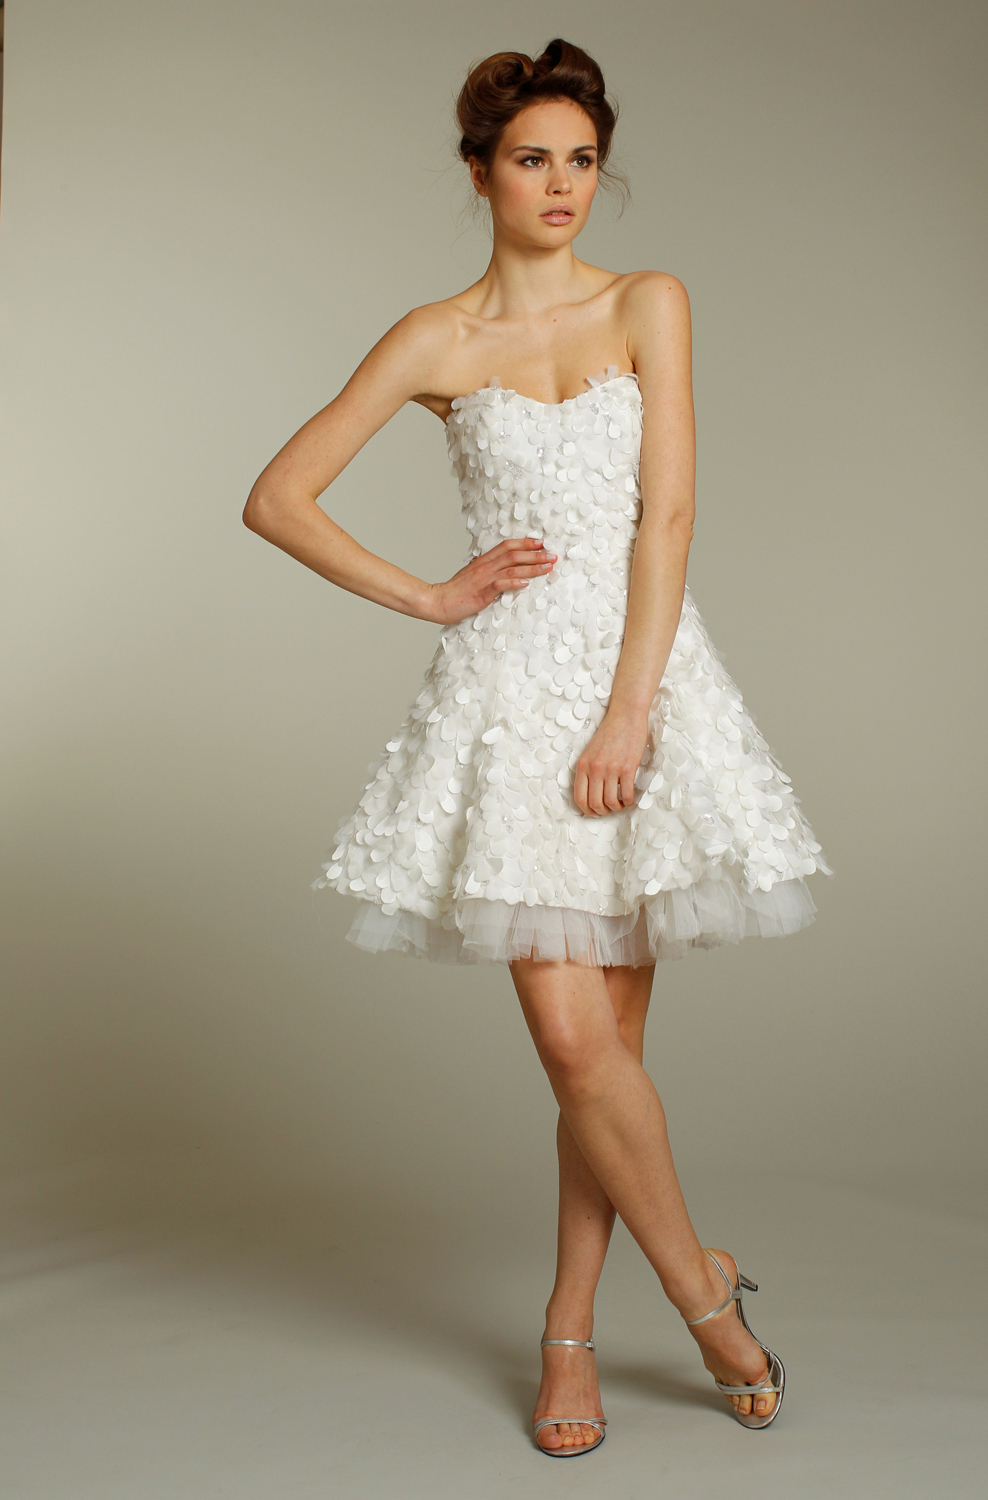 Fall short wedding dresses sang maestro for Good wedding dresses for short brides